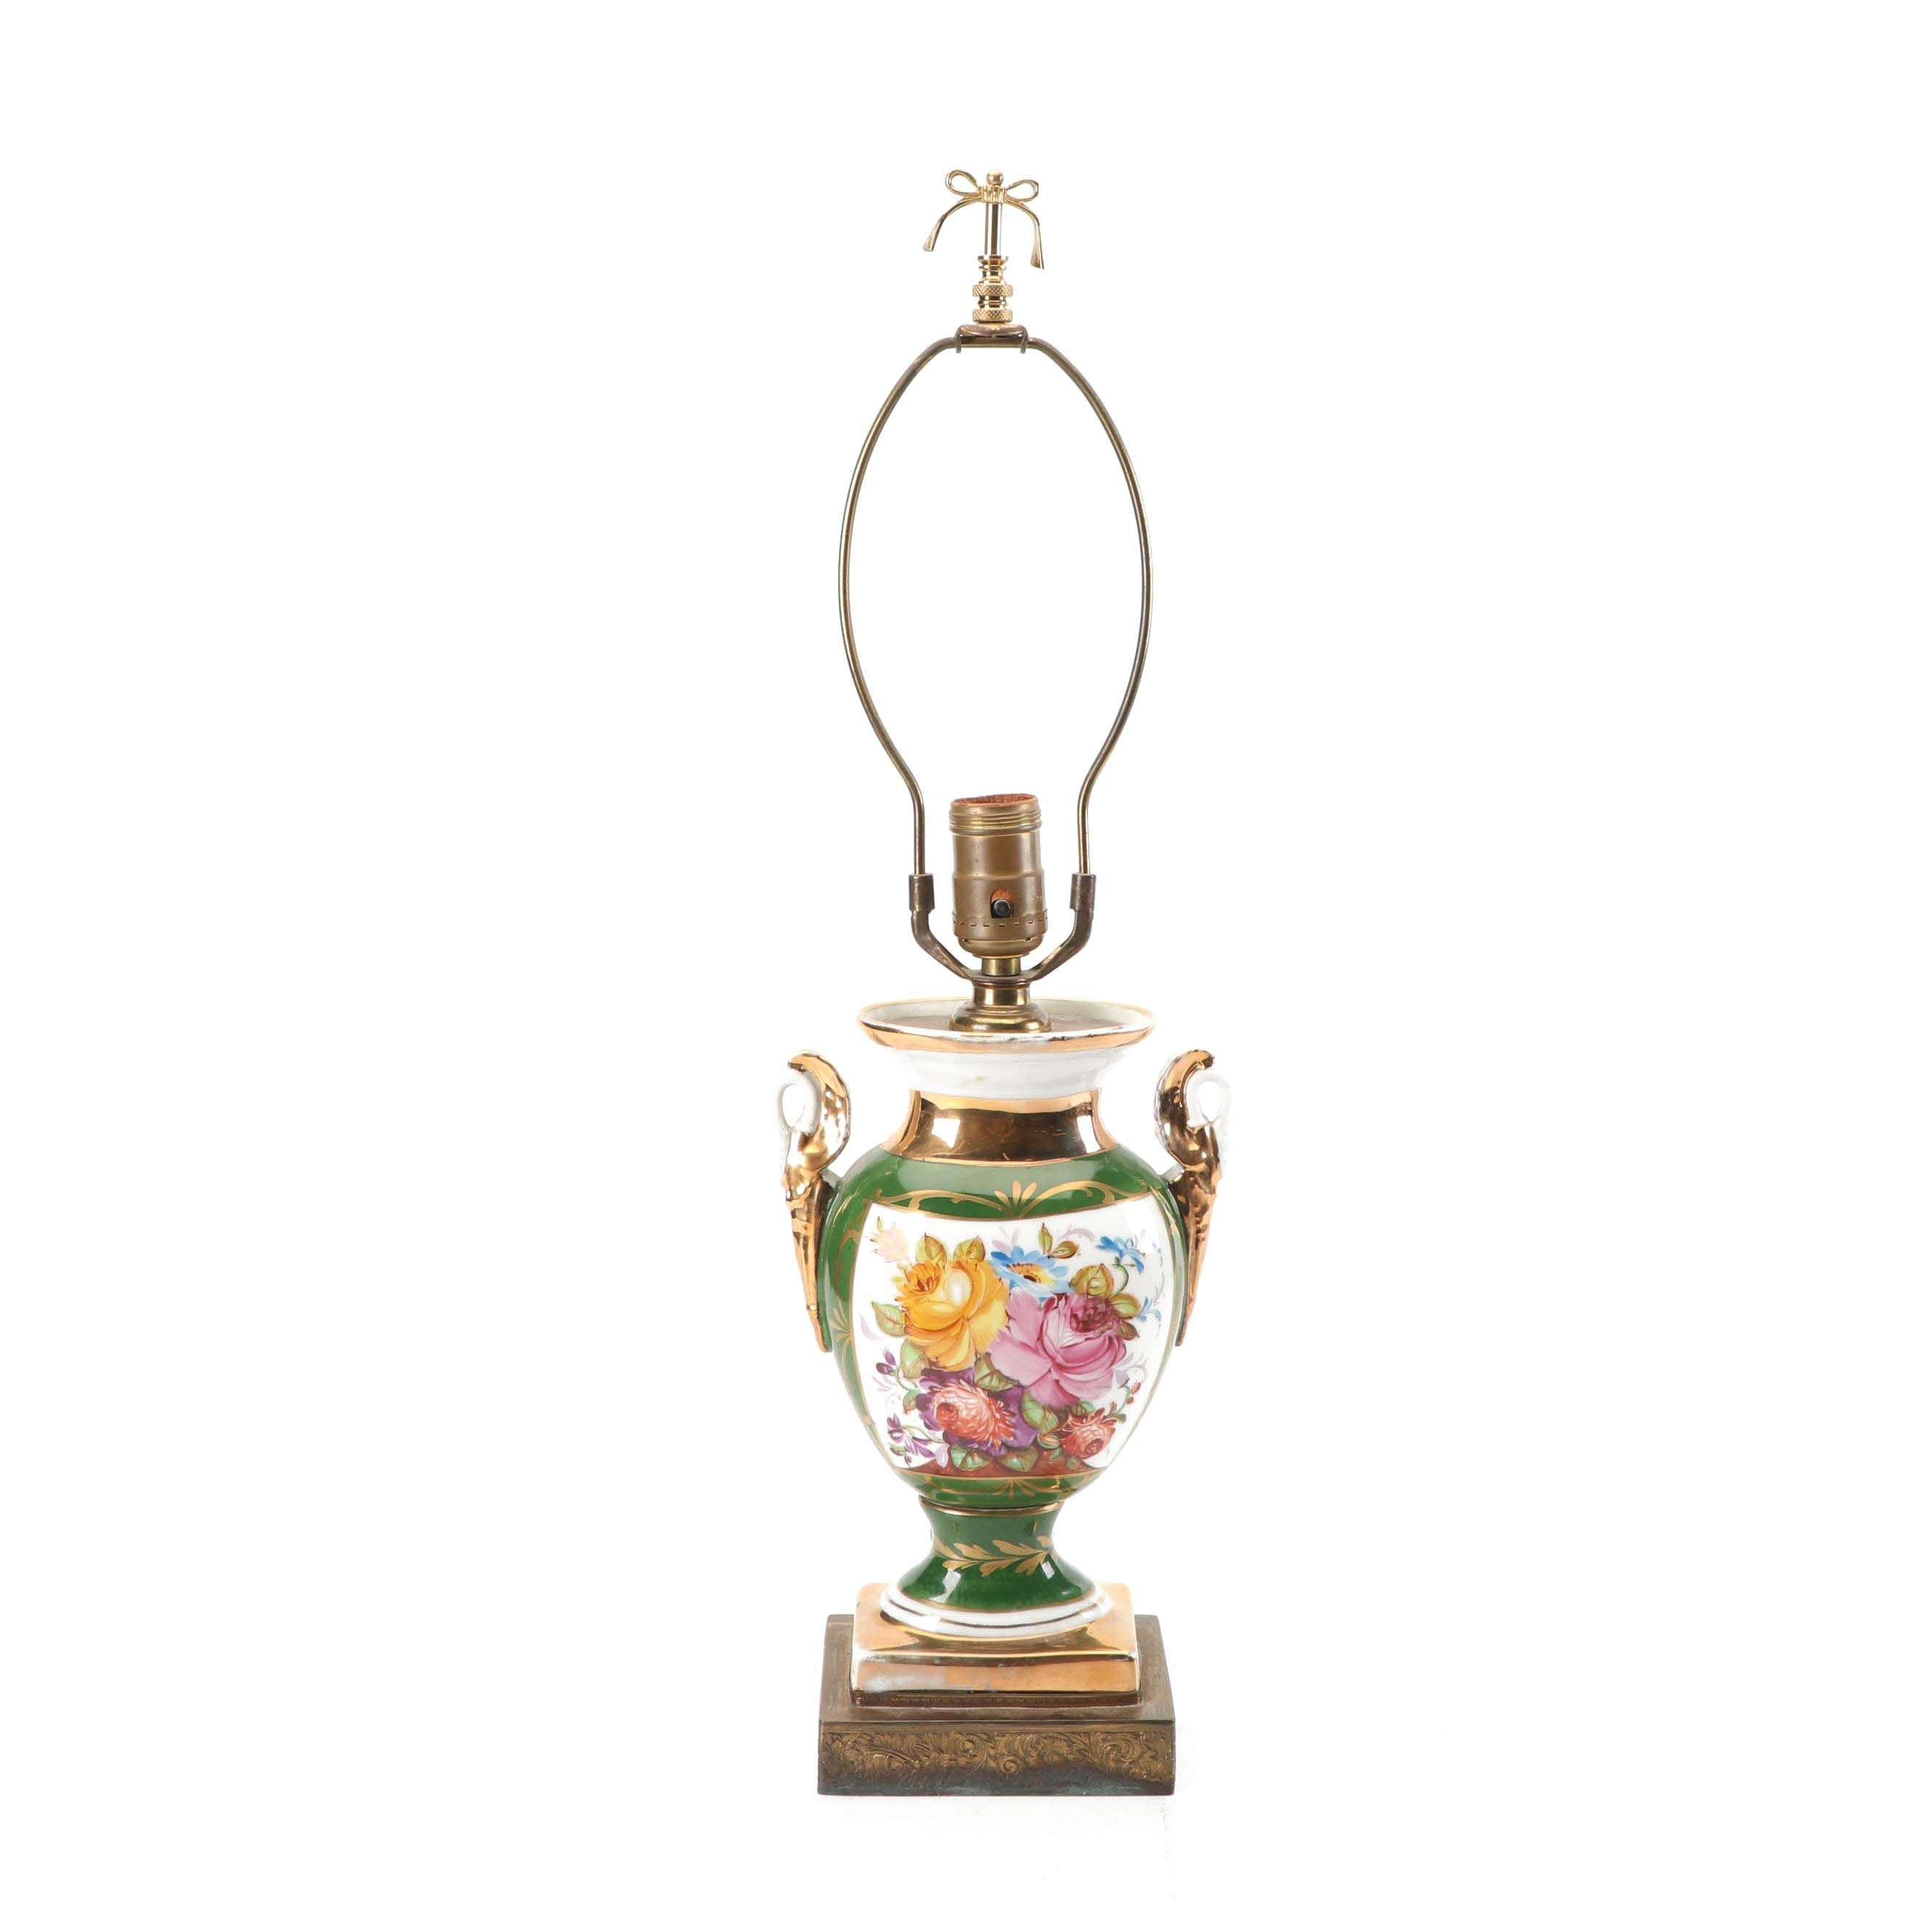 Sevres-Style Hand-Painted Floral Themed Mounted Porcelain Urn Lamp